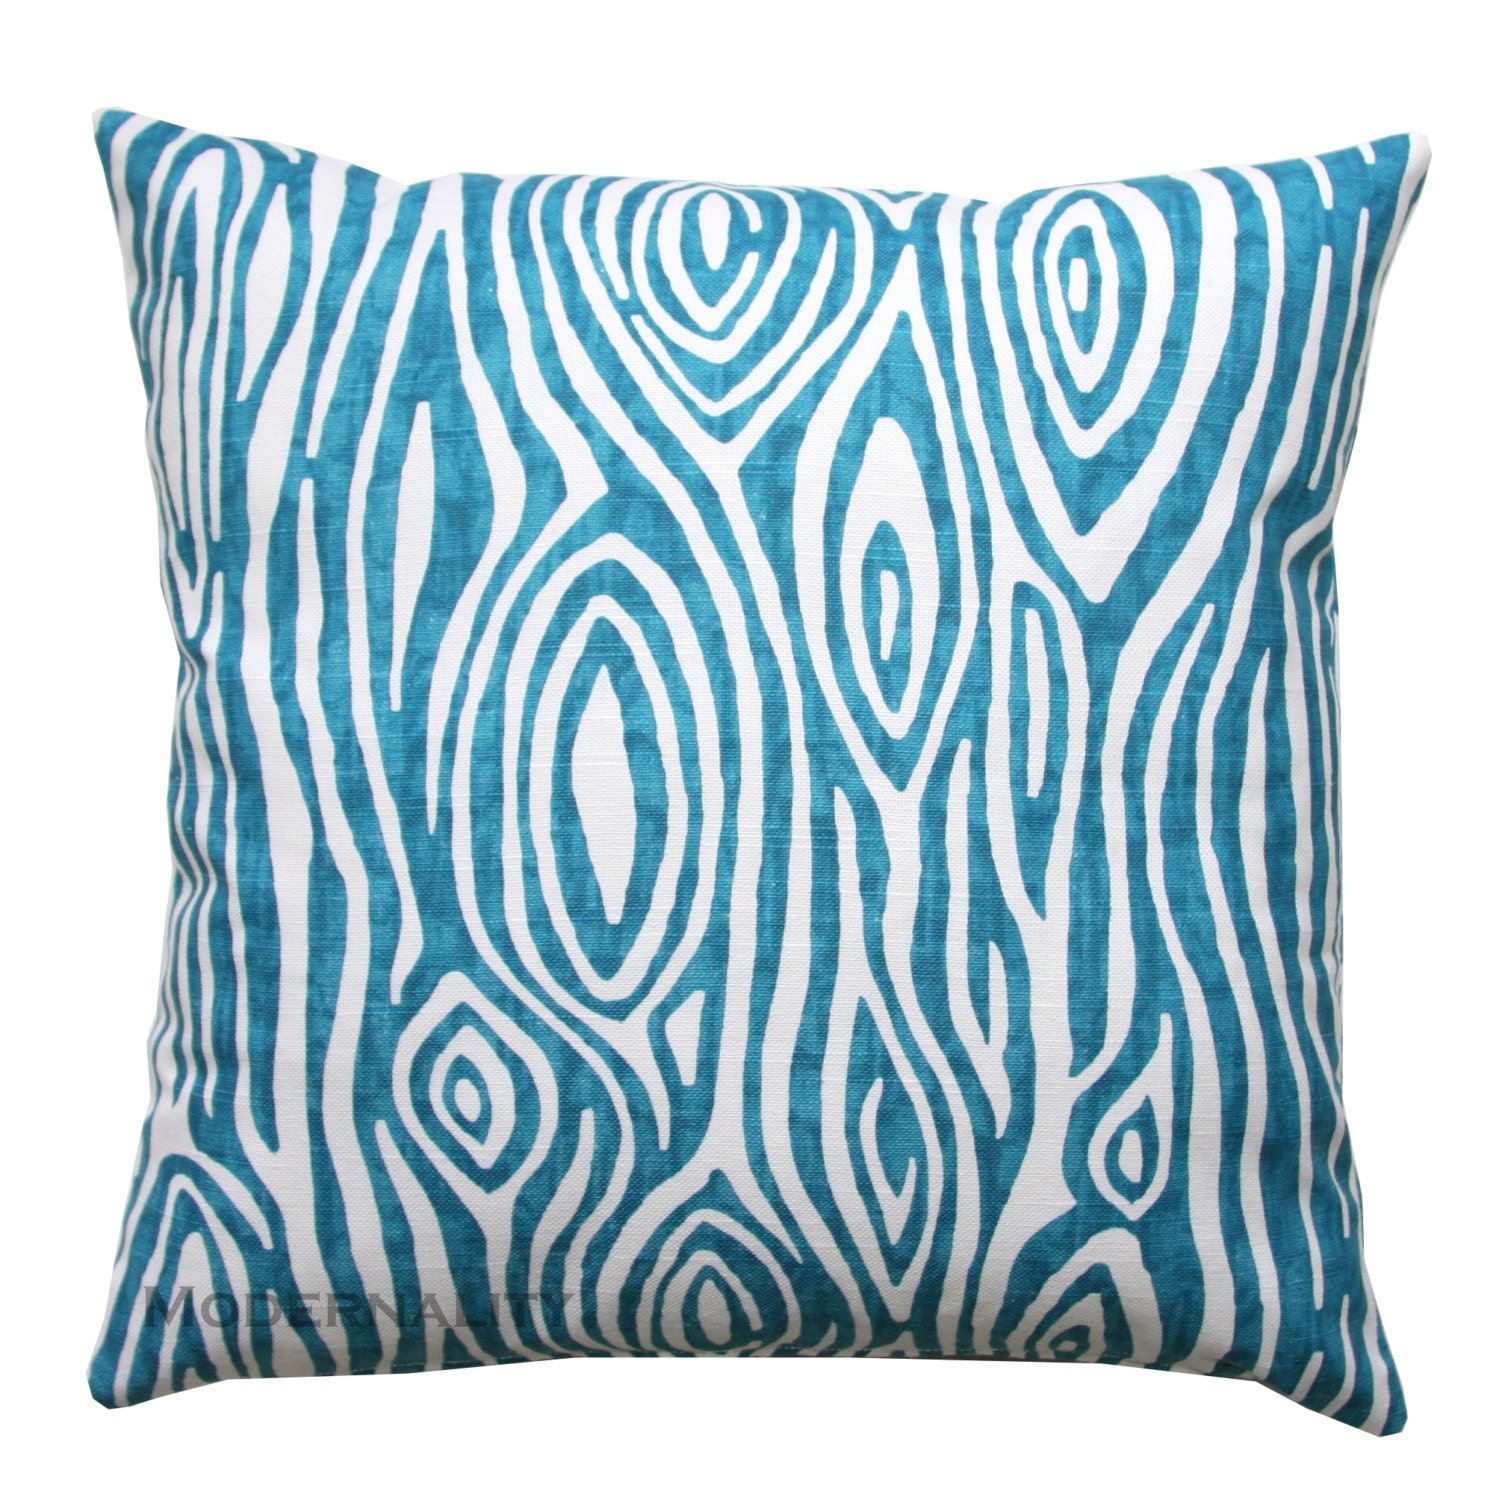 Throw Pillows In Clearance : CLEARANCE Decorative Pillows Premier Prints Aquarius Dark